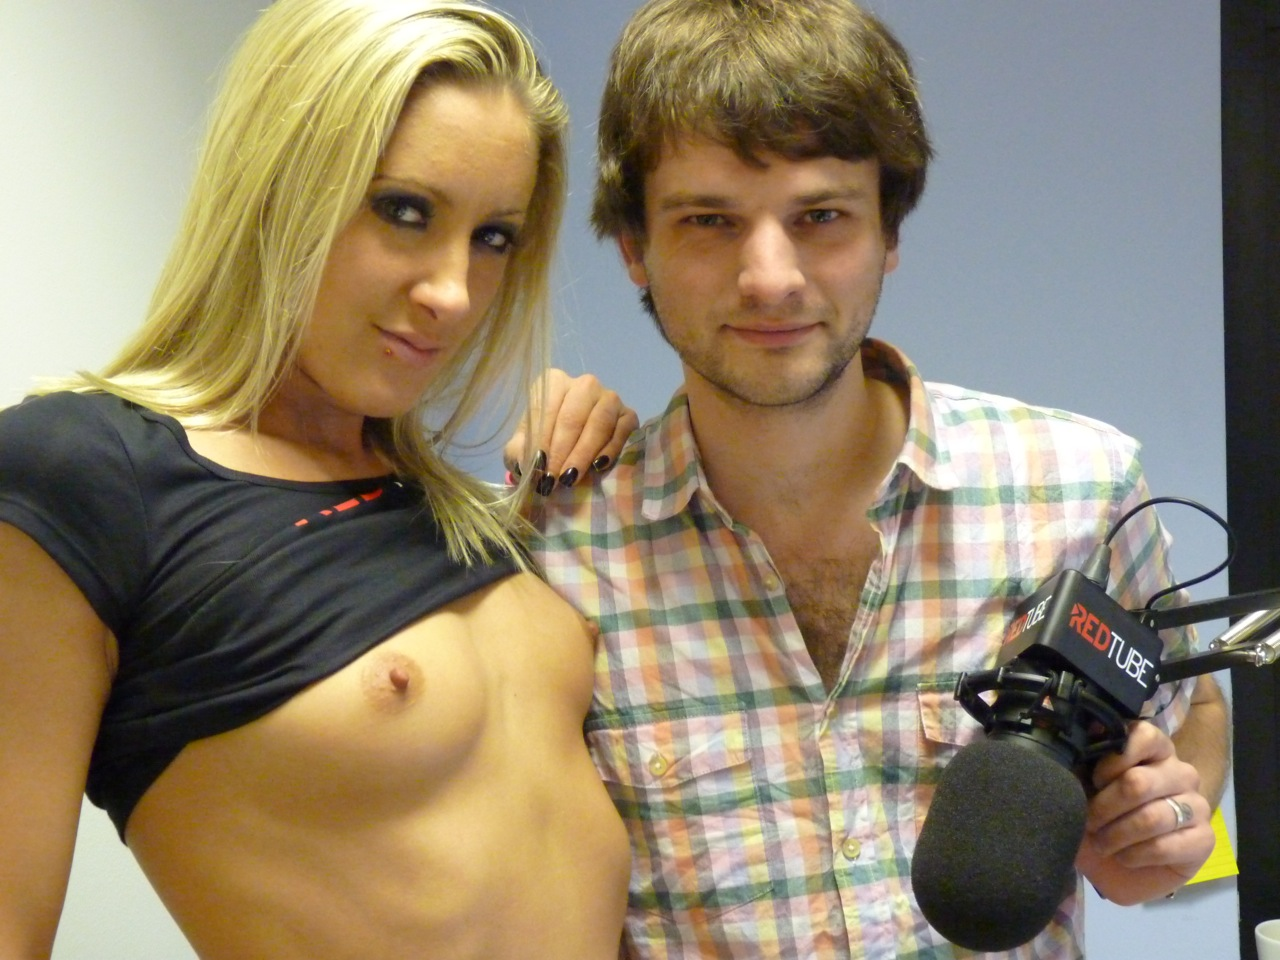 Angel Long with Allan Lake in RedTube Studio